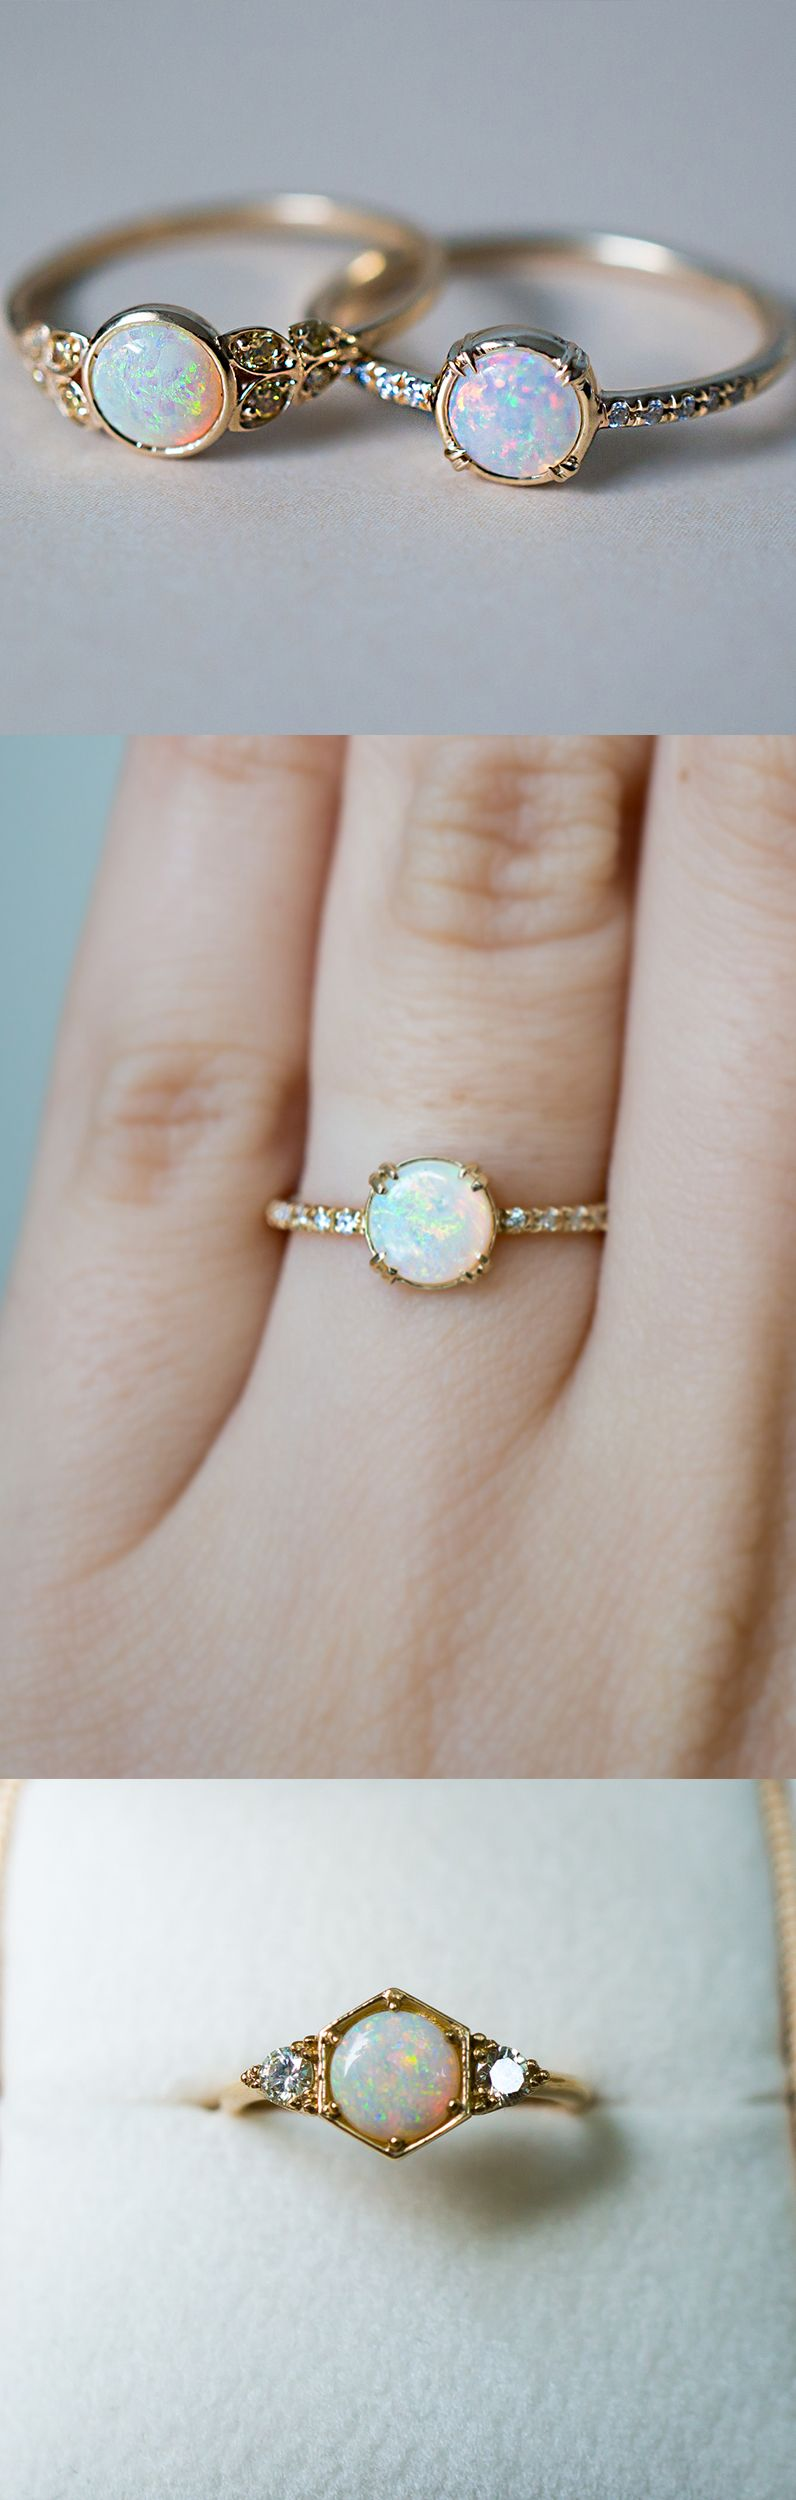 One Of A Kind Opal Engagement Rings Inspired By Vintage Style Handcrafted S Co In Nyc